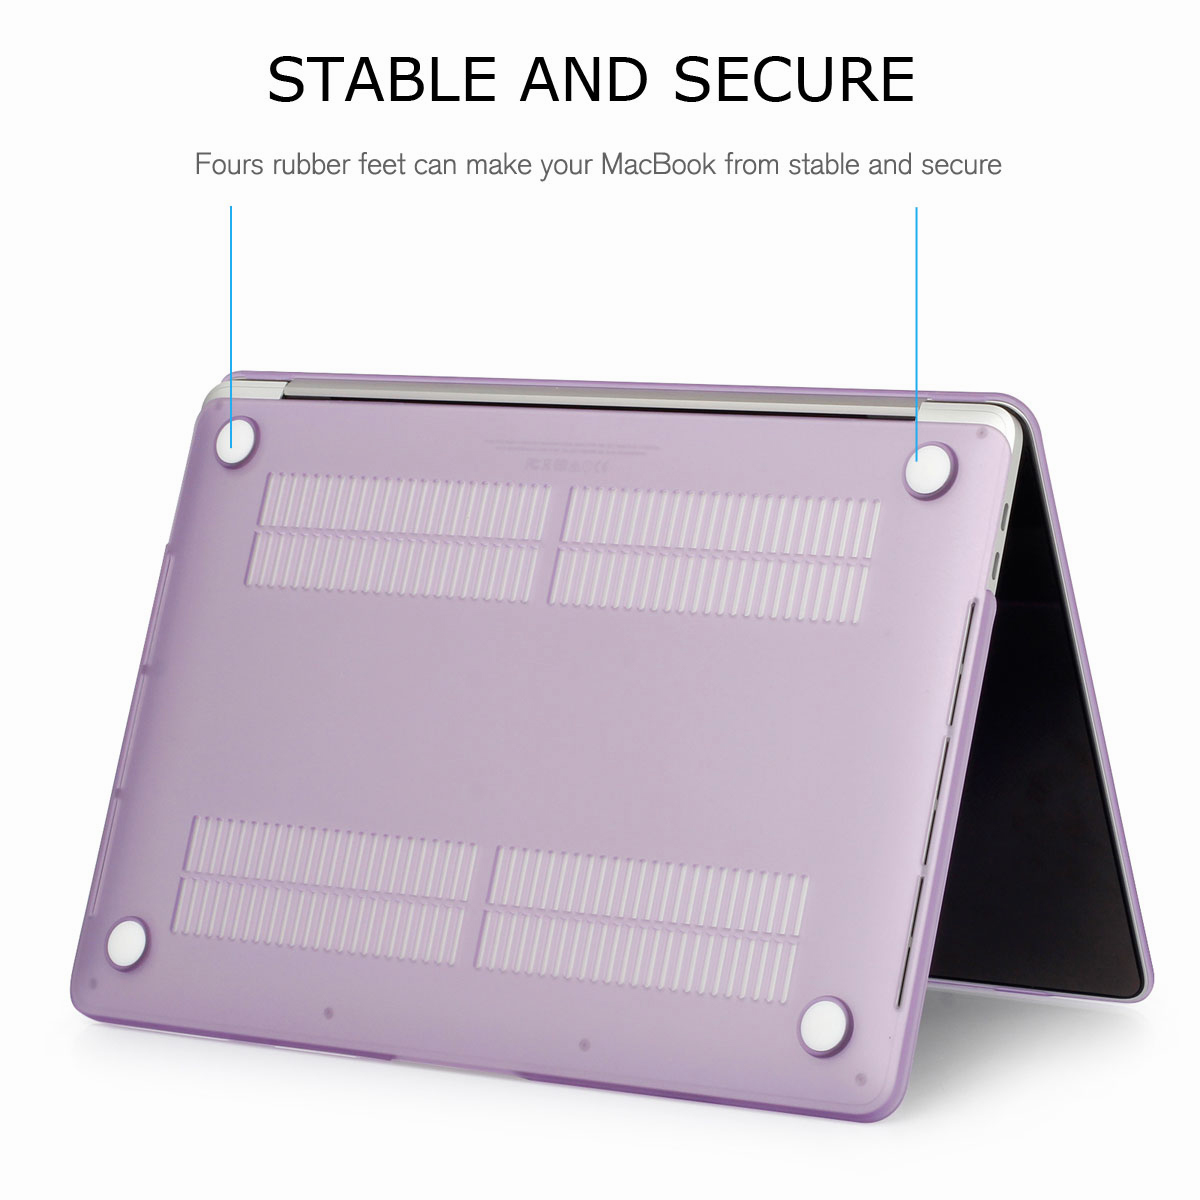 Shockproof-Rubberized-Matte-Hard-Case-Cover-For-Macbook-13-034-15-034-Inch-A1286-A1278 thumbnail 71